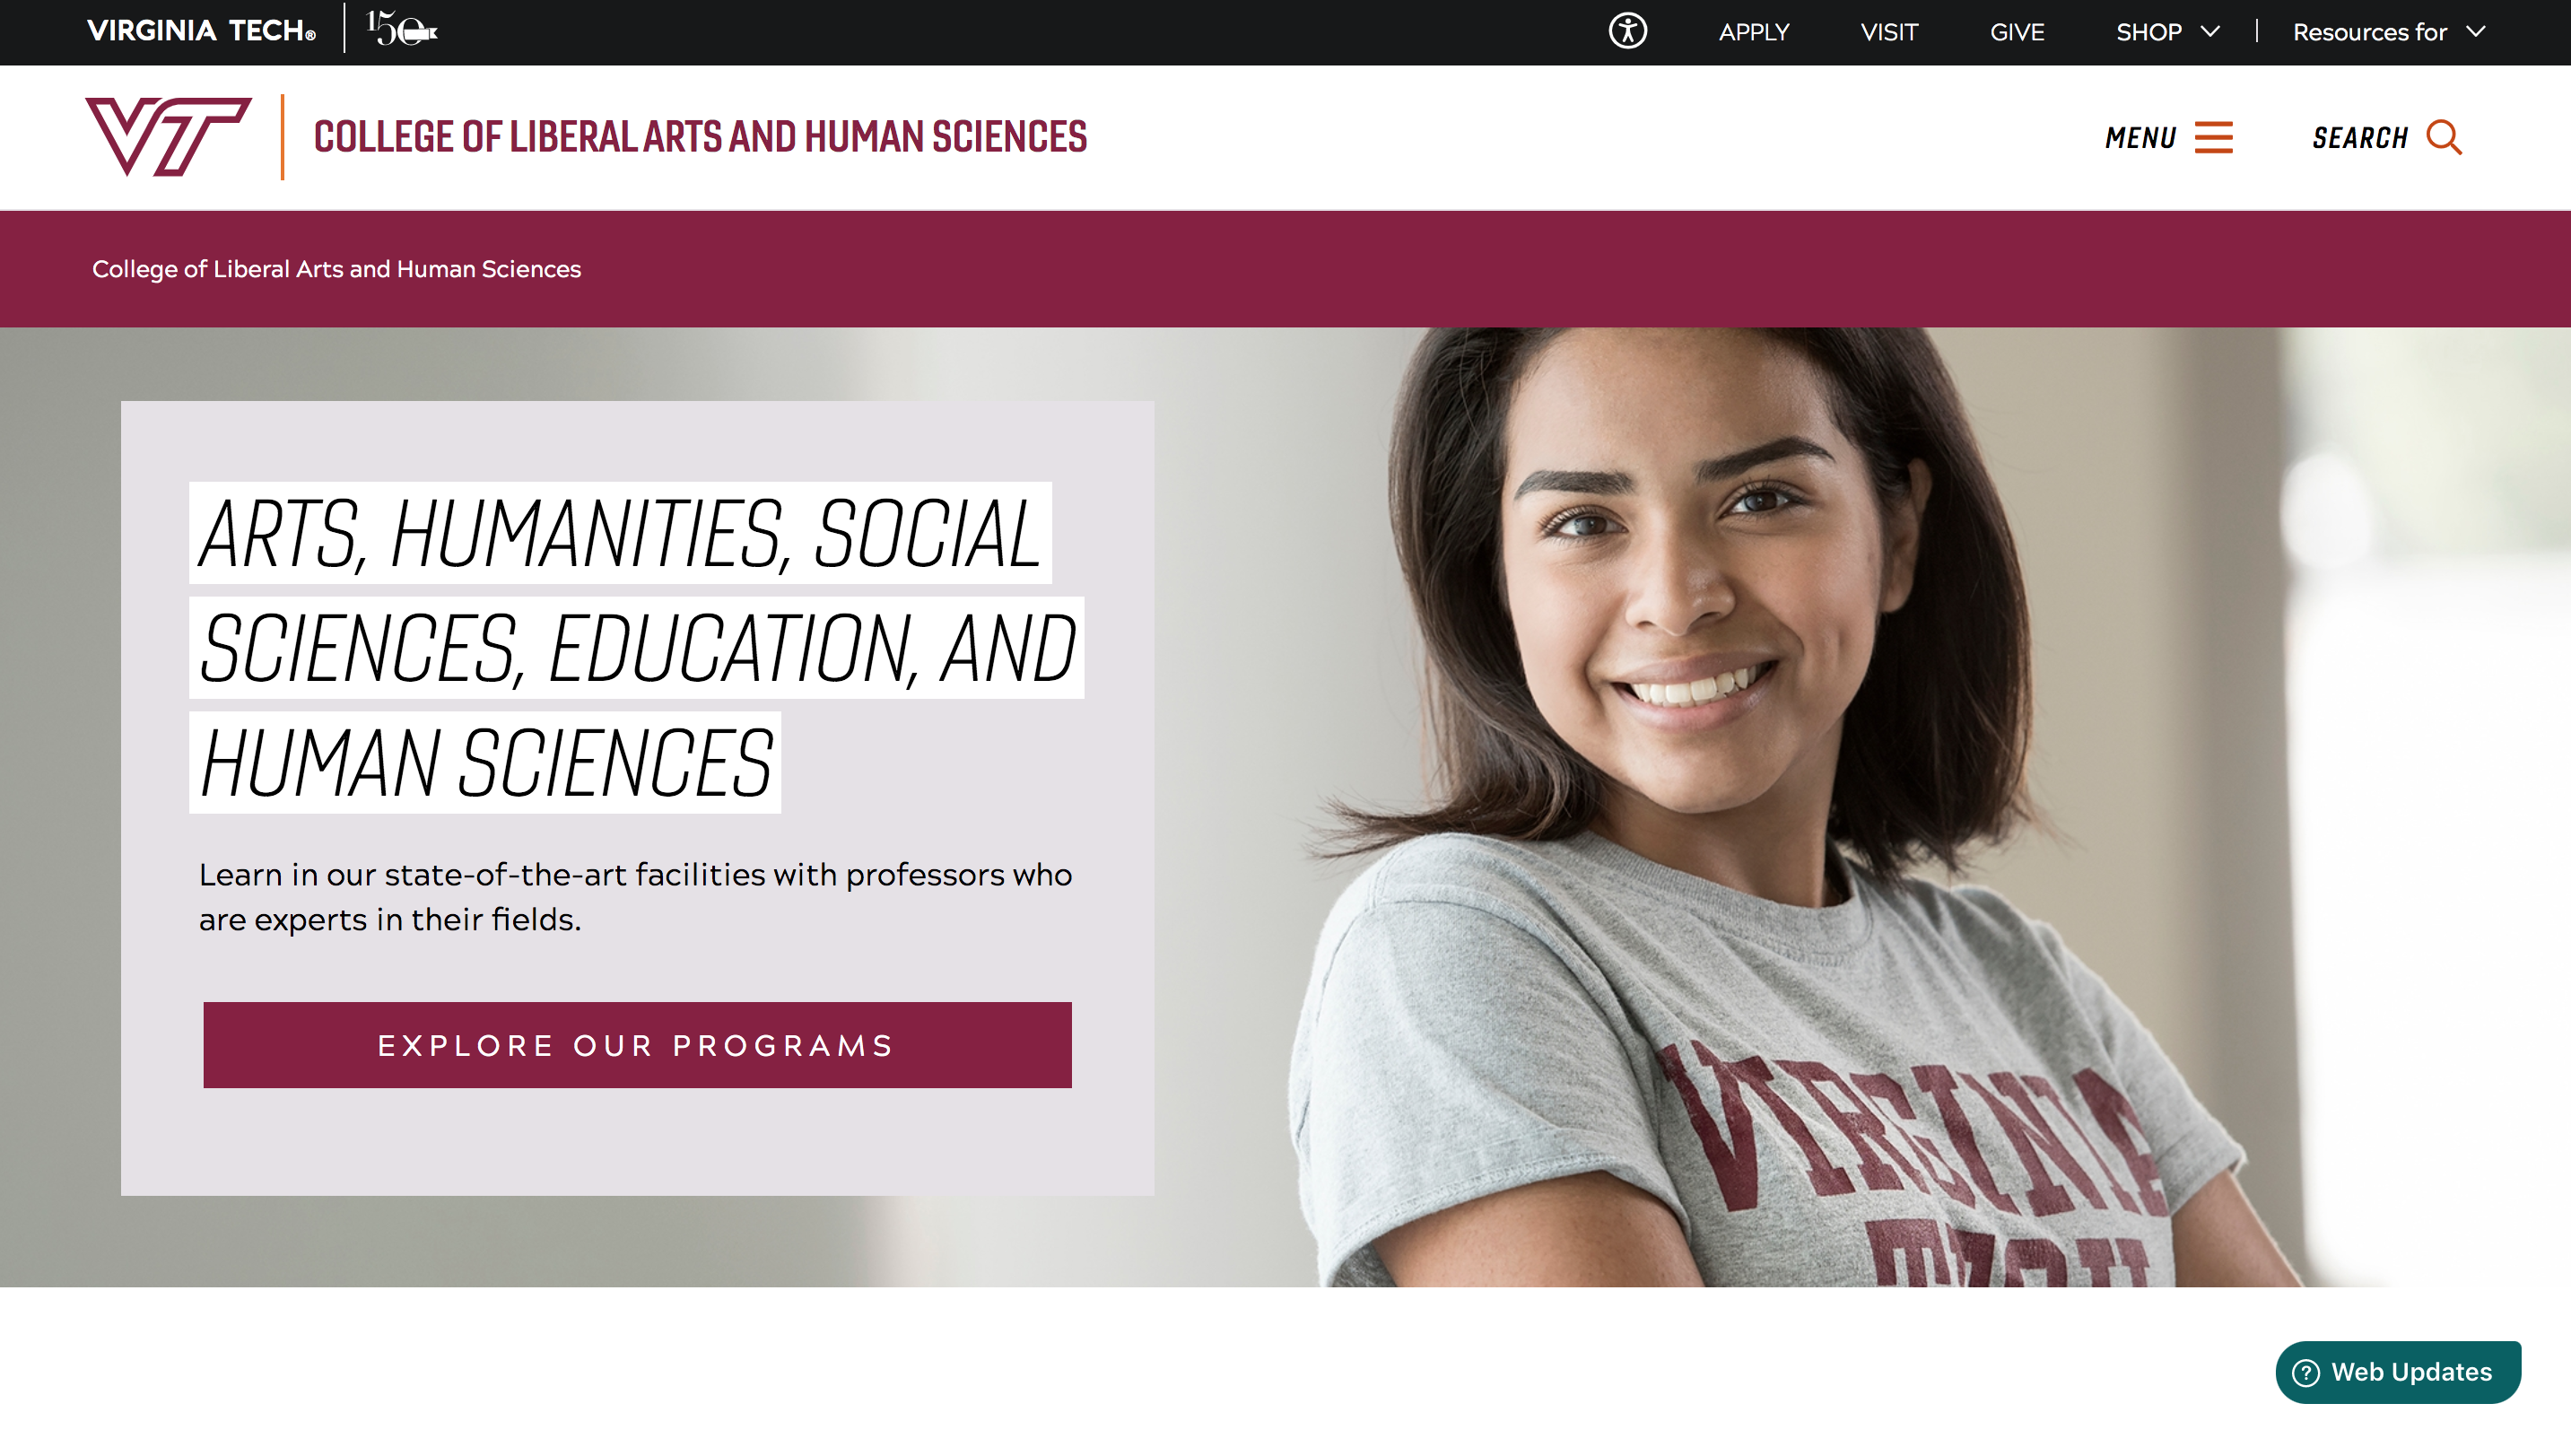 Check out the College at liberalarts.vt.edu!